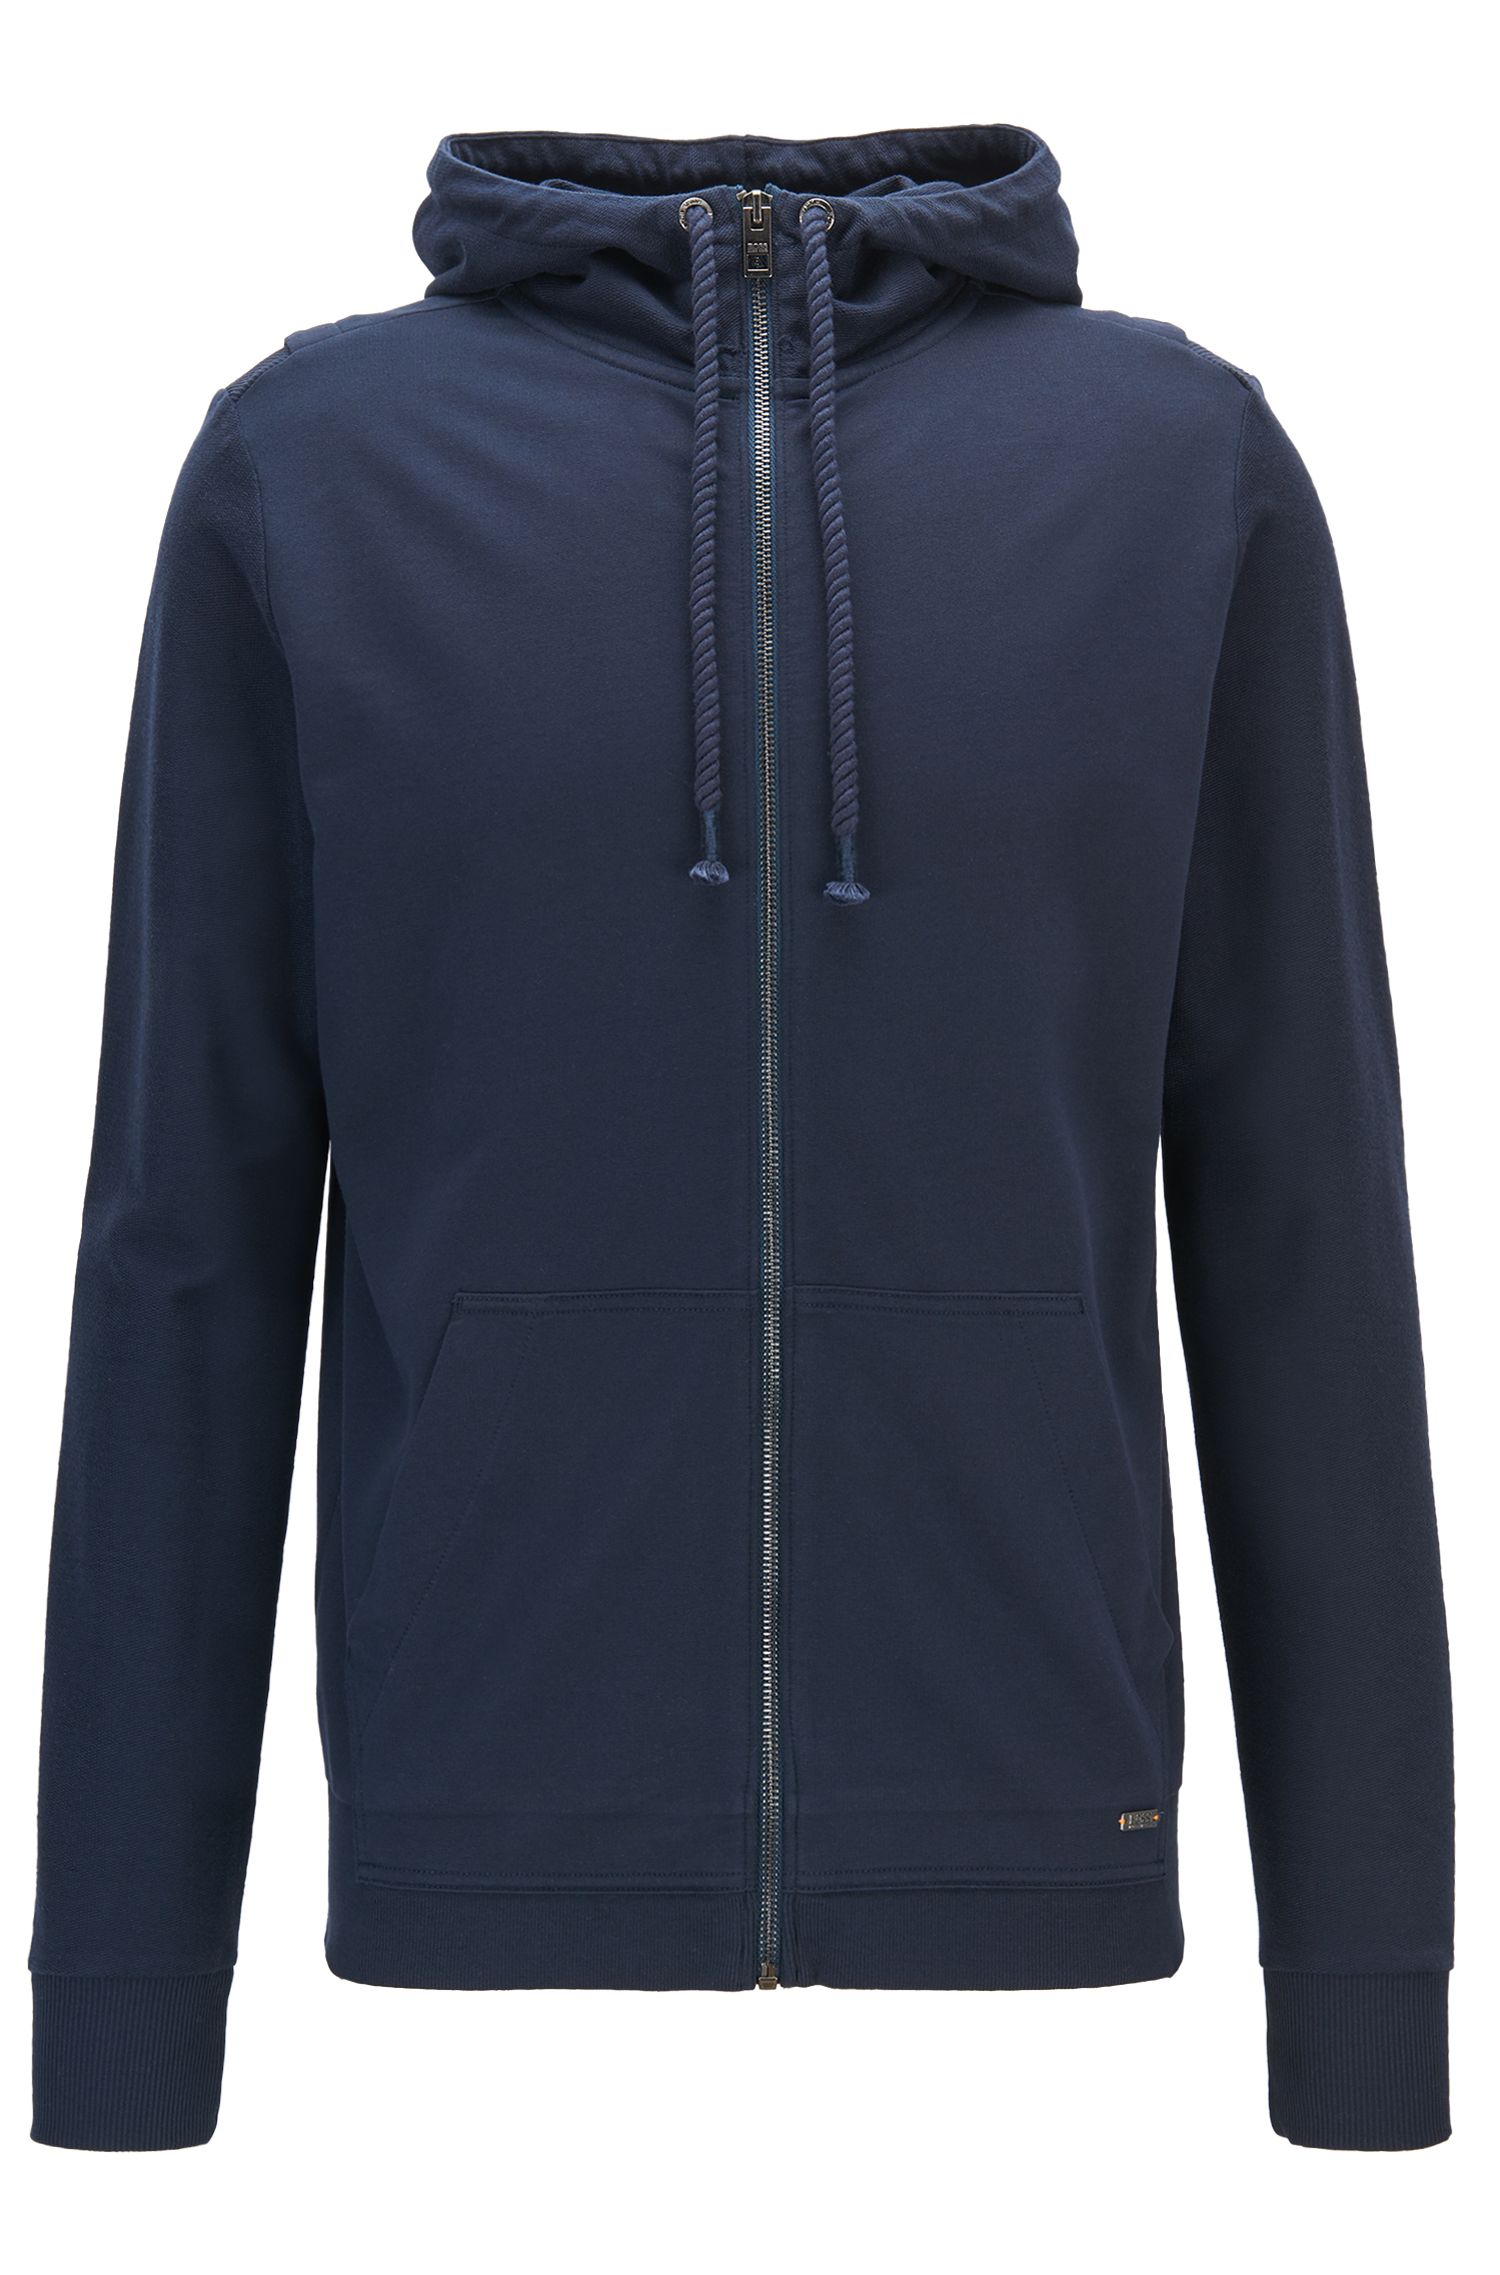 French Terry Cotton Hoodie | Zilder